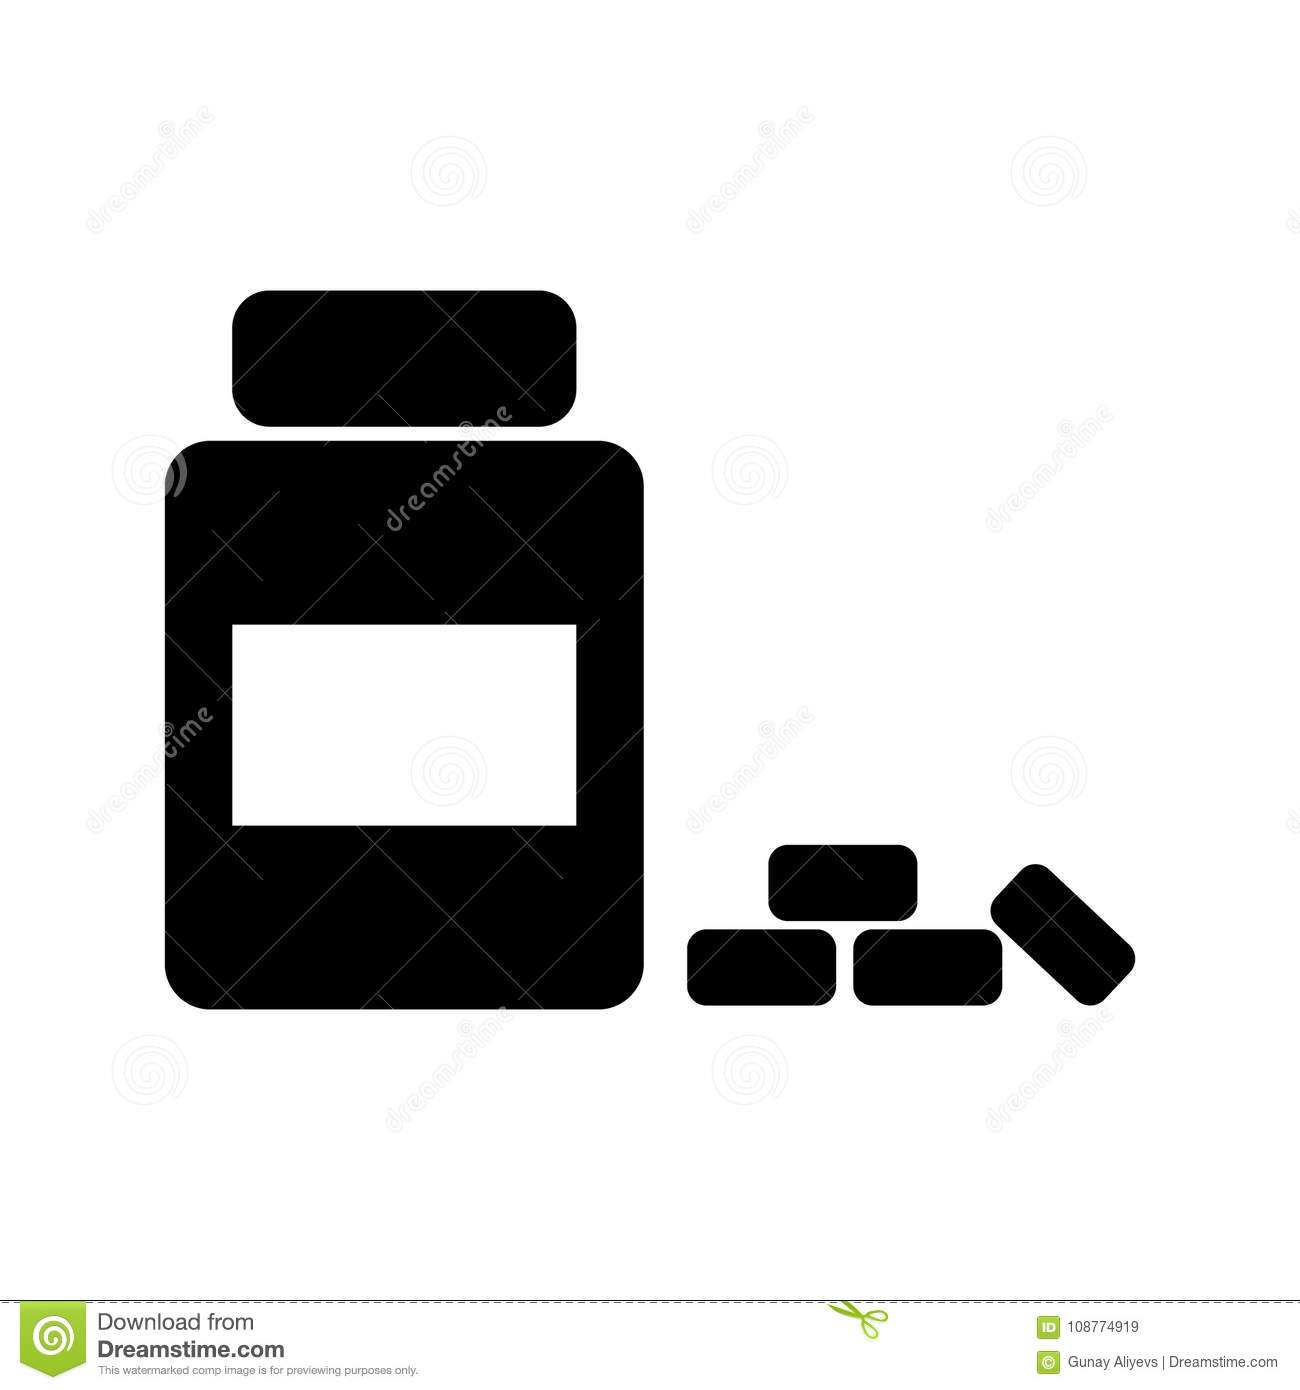 Medicine bottle icon doctor element icon premium quality graphic signs outline symbols collection icon for websites web design mobile app info graphics on white background buycottarizona Choice Image